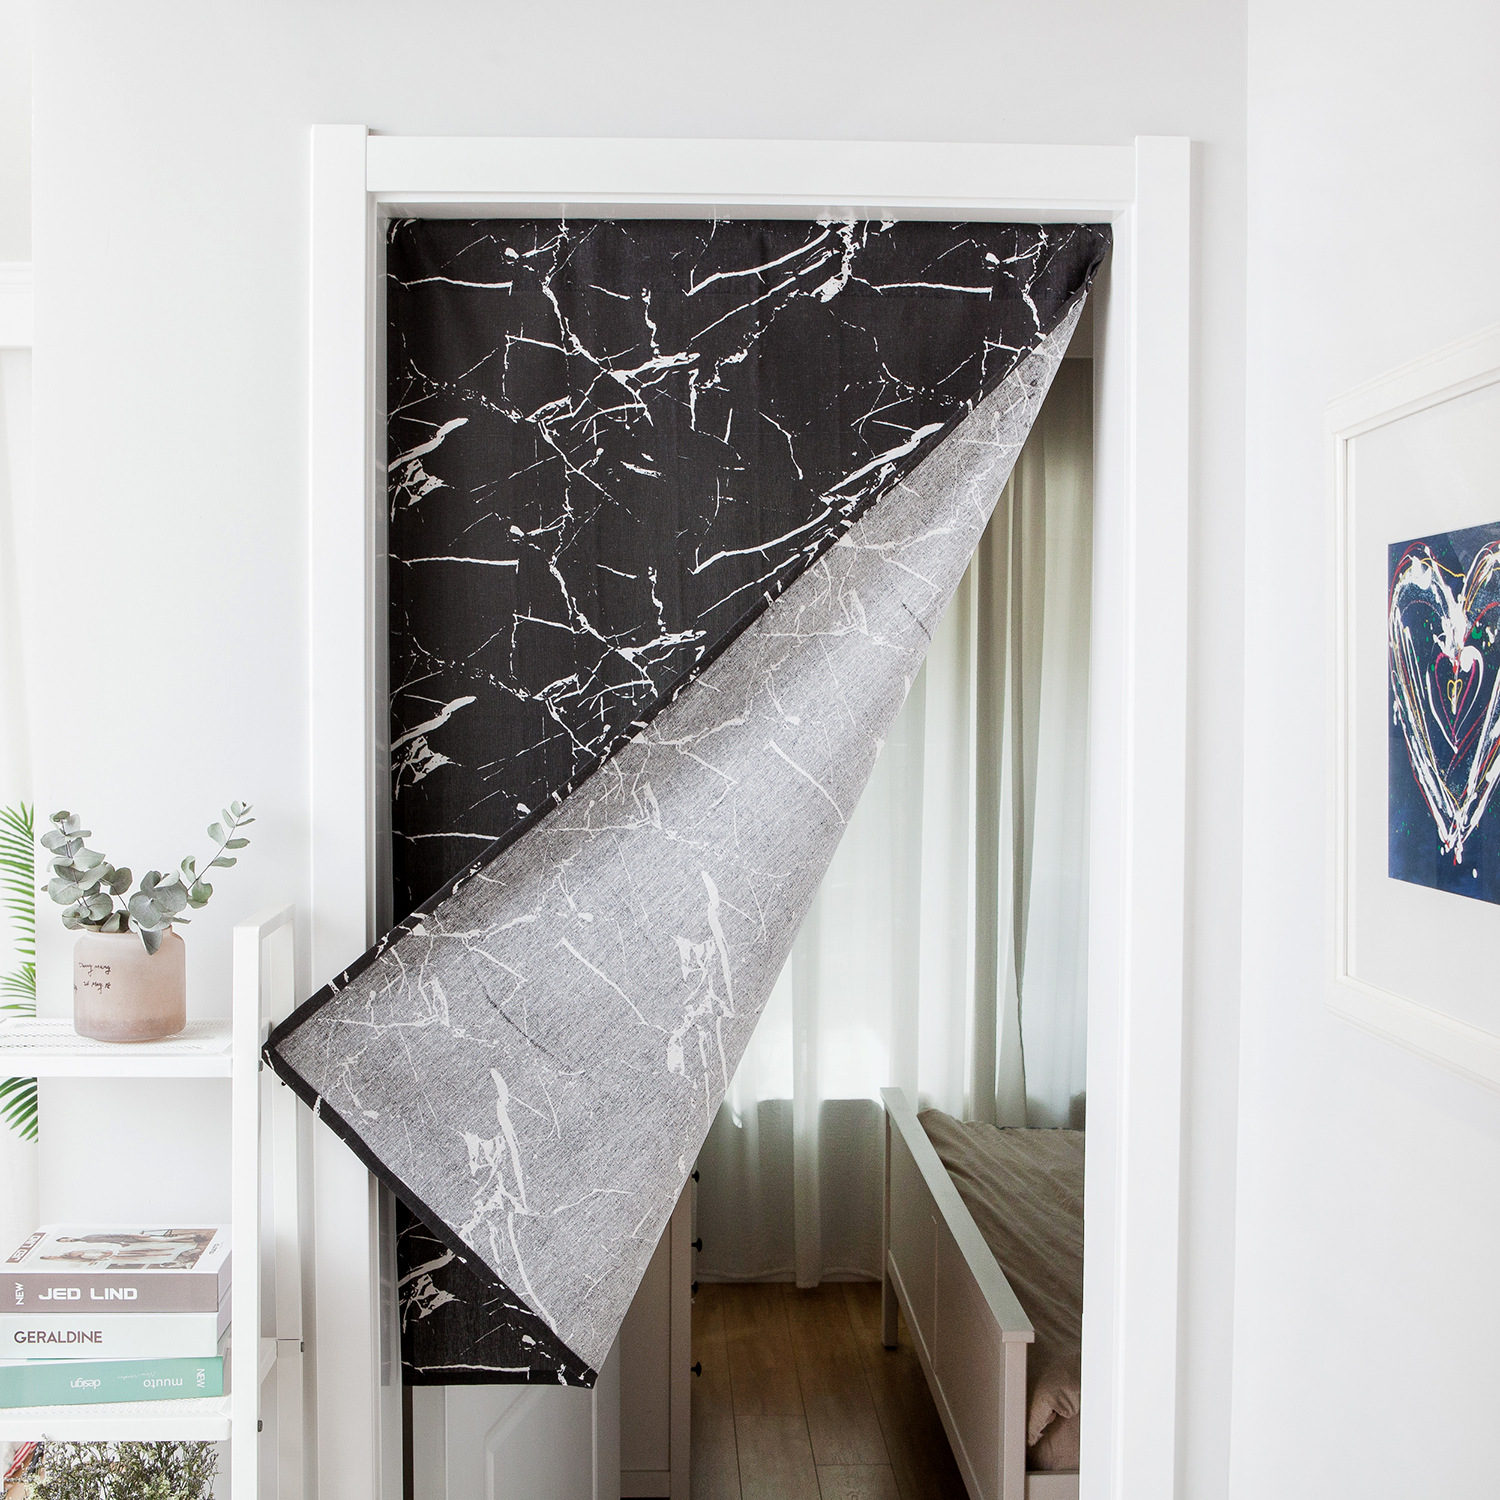 Us 10 44 38 Off Black White Linen Doorway Curtain Striped Printed Modern Valances For Room Window Kitchen Home Decoration Fabric Screen Dw134 In